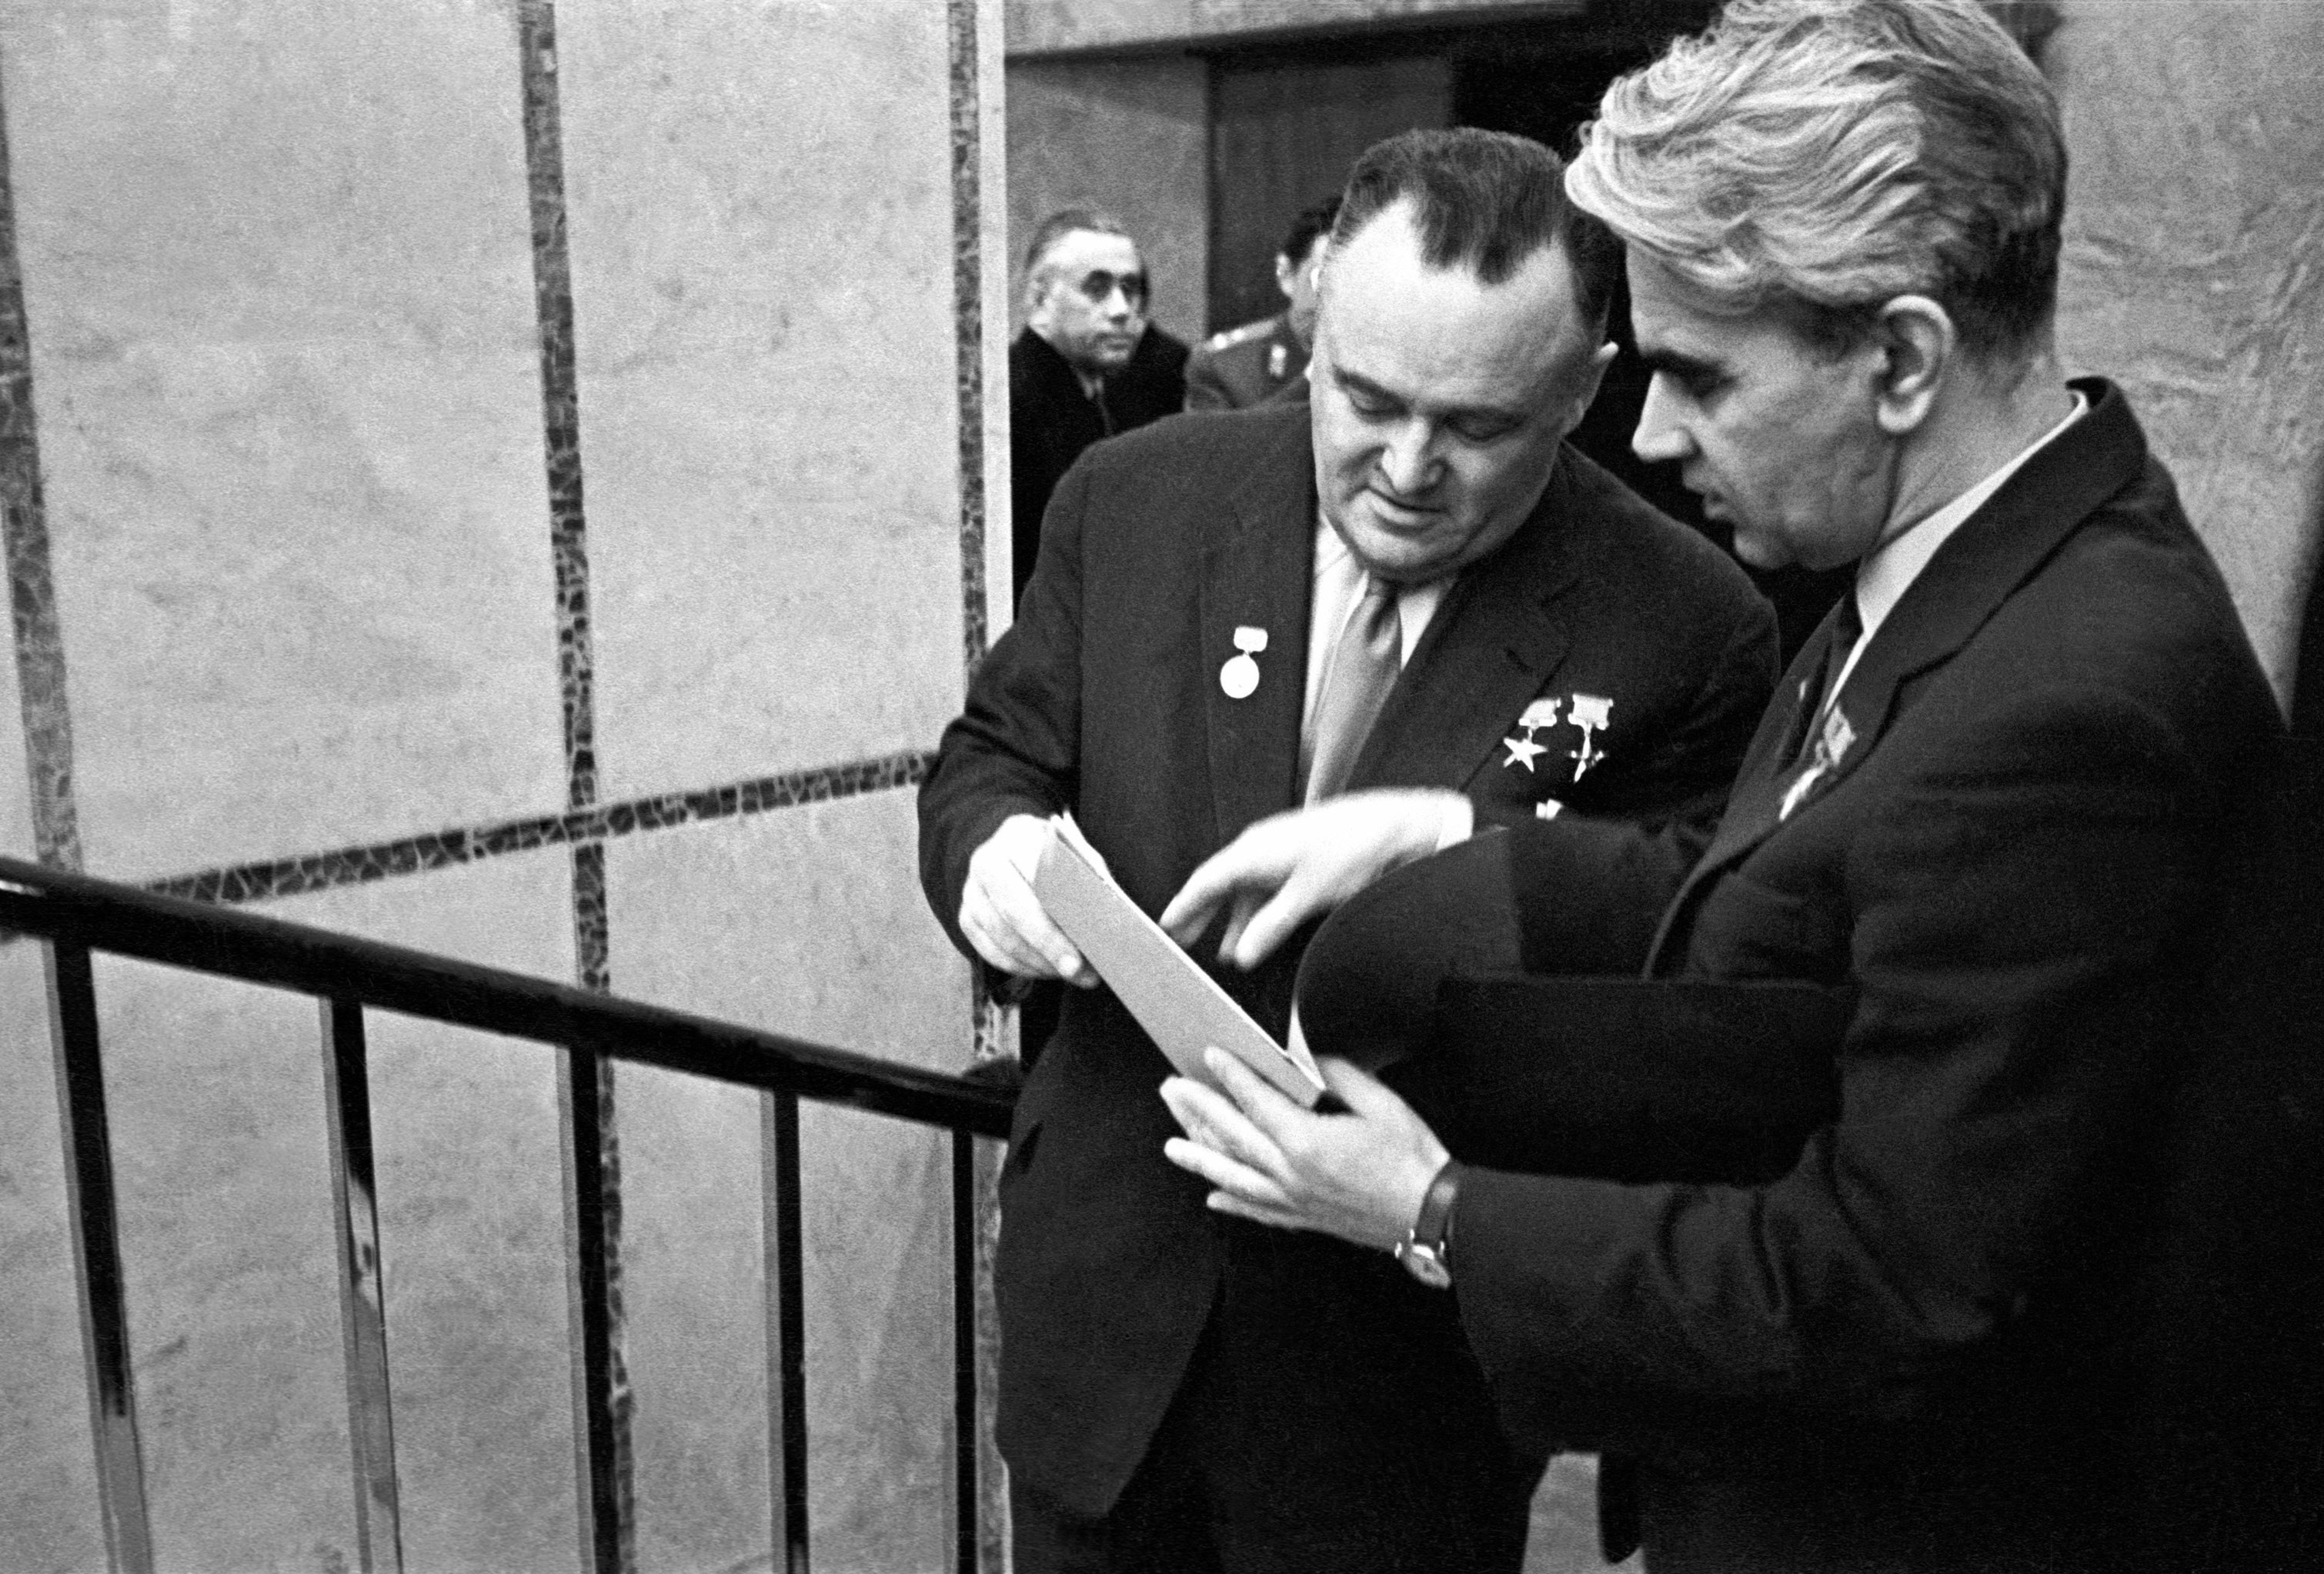 Chief designer Sergei Korolyov and Mstislav Keldysh (left to right) attending the 20th Congress of the Soviet Communist Party in 1956. (File)